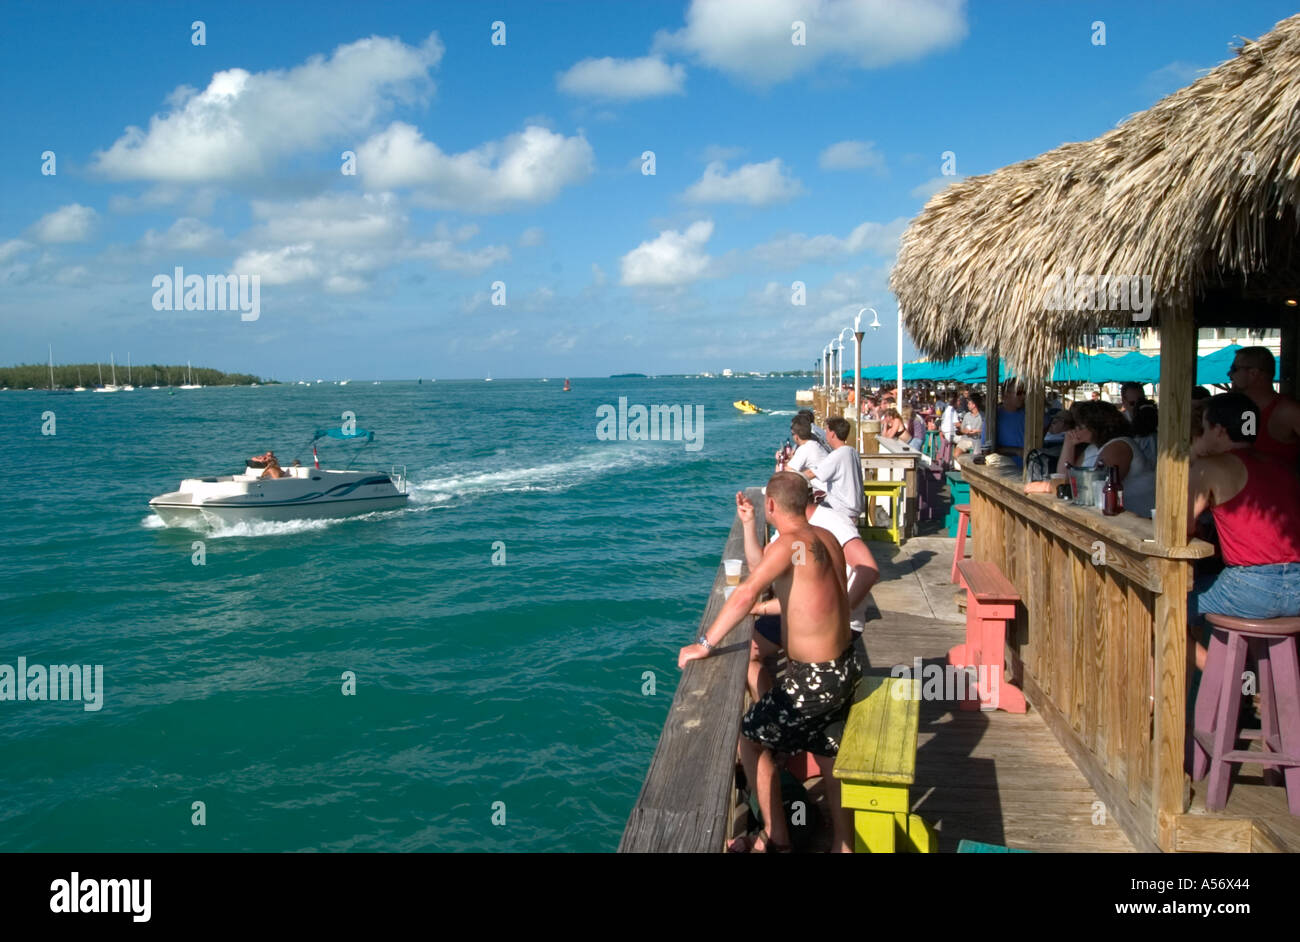 Sunset Pier bar in the historic Old Town, Key West, Florida, USA - Stock Image